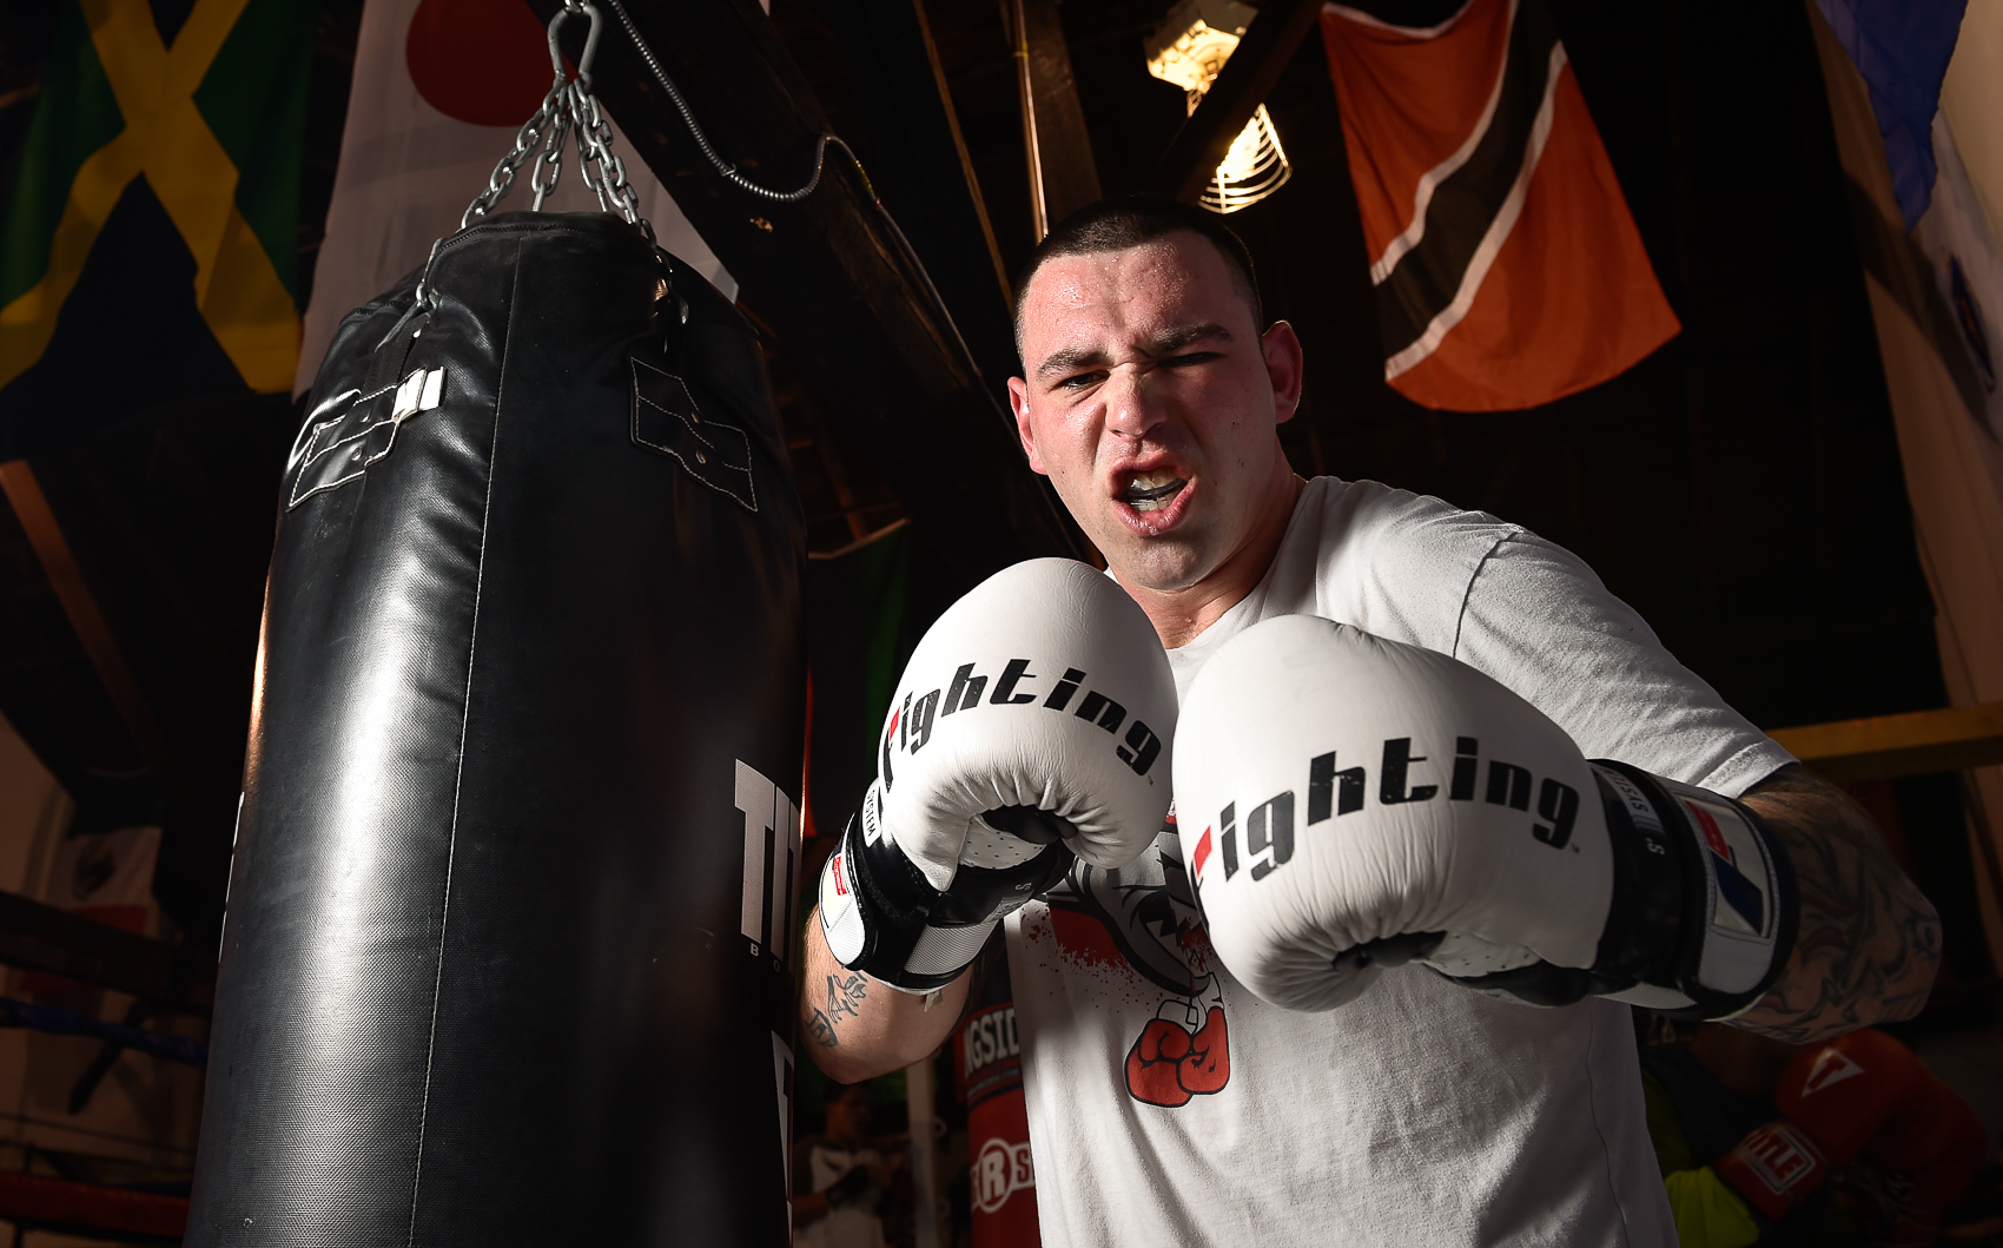 """2nd Place, Portrait Photo  Zach """"The Shark Attack"""" Calmus inside Private Jewels Fitness in Lynn where he is training for his fight in the Golden Gloves tournament in Lowell, Tuesday, Jan. 31, 2017."""